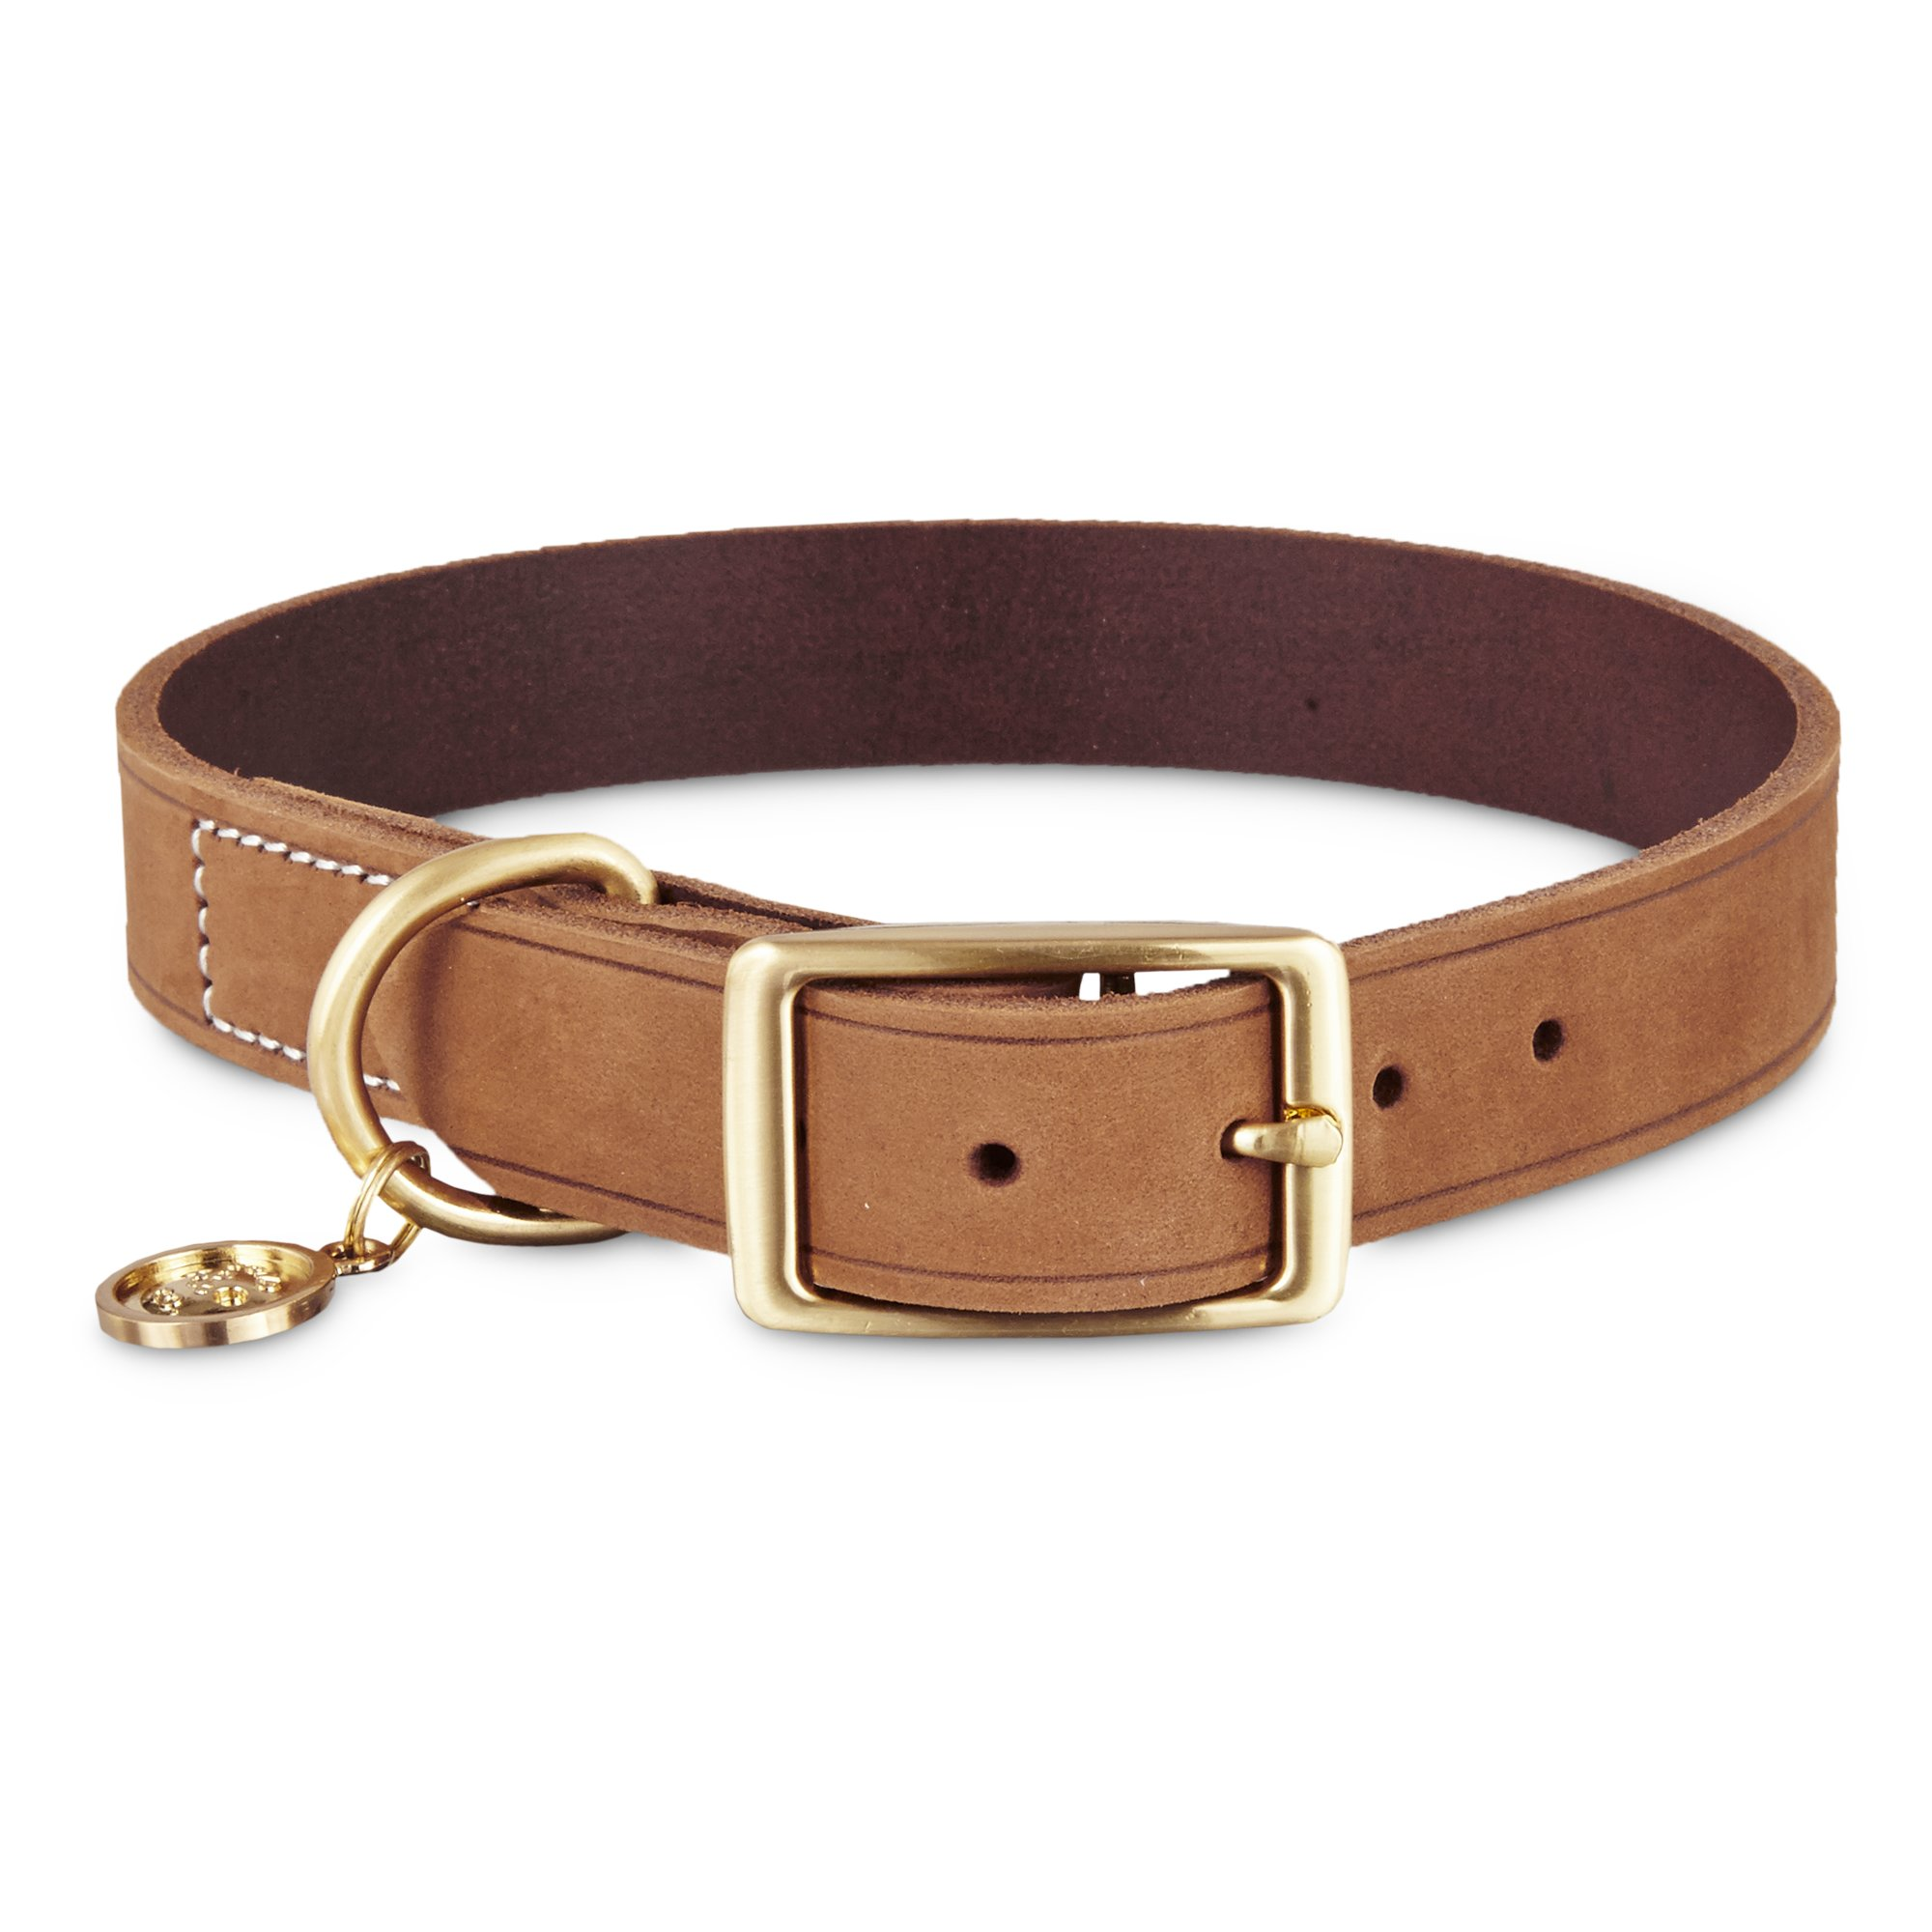 When Where Dog Collars Created